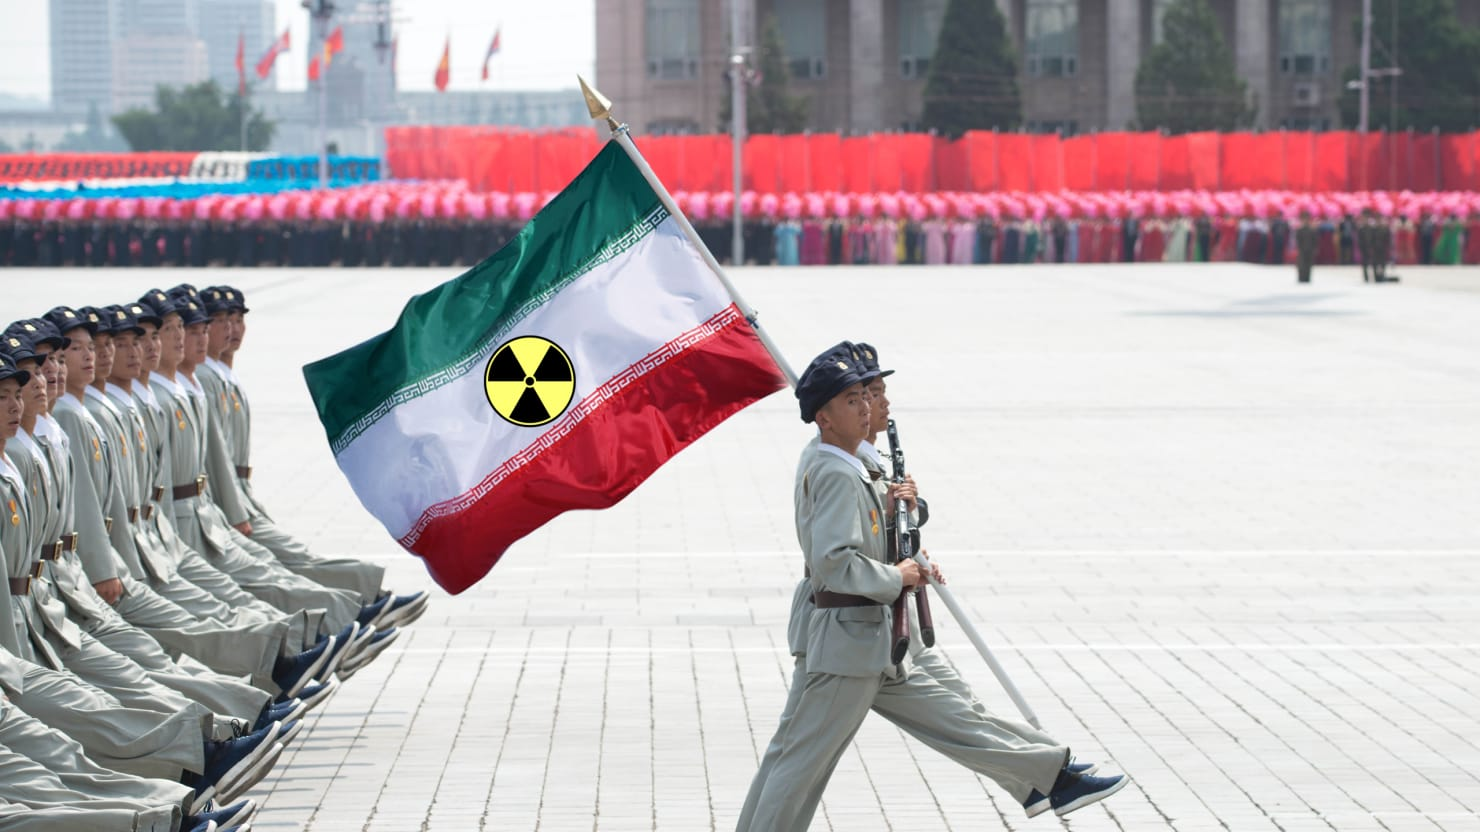 Iran and North Korea: The Nuclear 'Axis of Resistance'